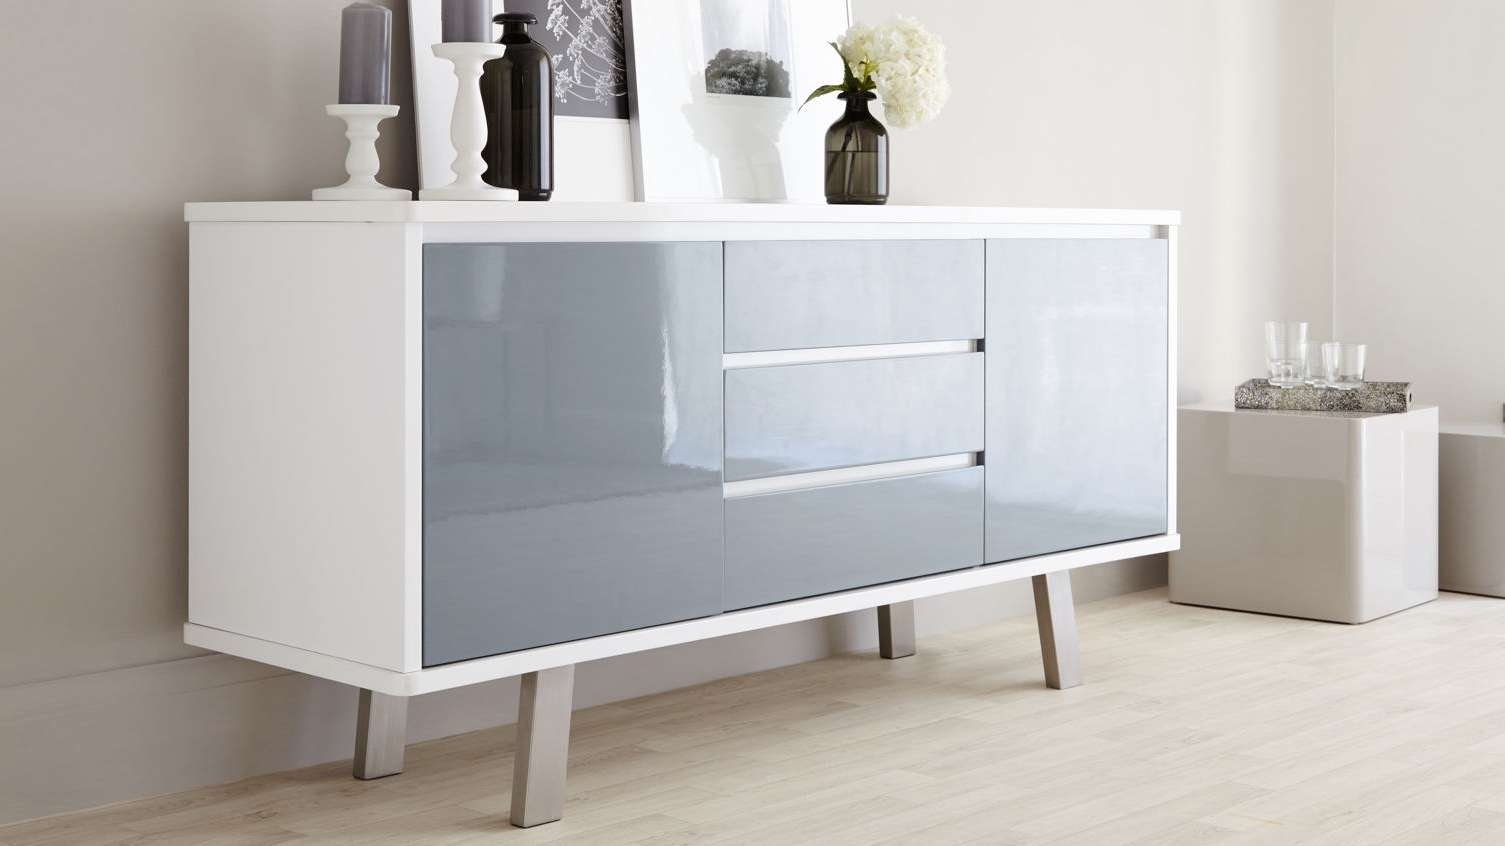 Furniture: Mid Century Modern Sideboard For Inspiring Interior With Elegant Sideboards (View 3 of 20)